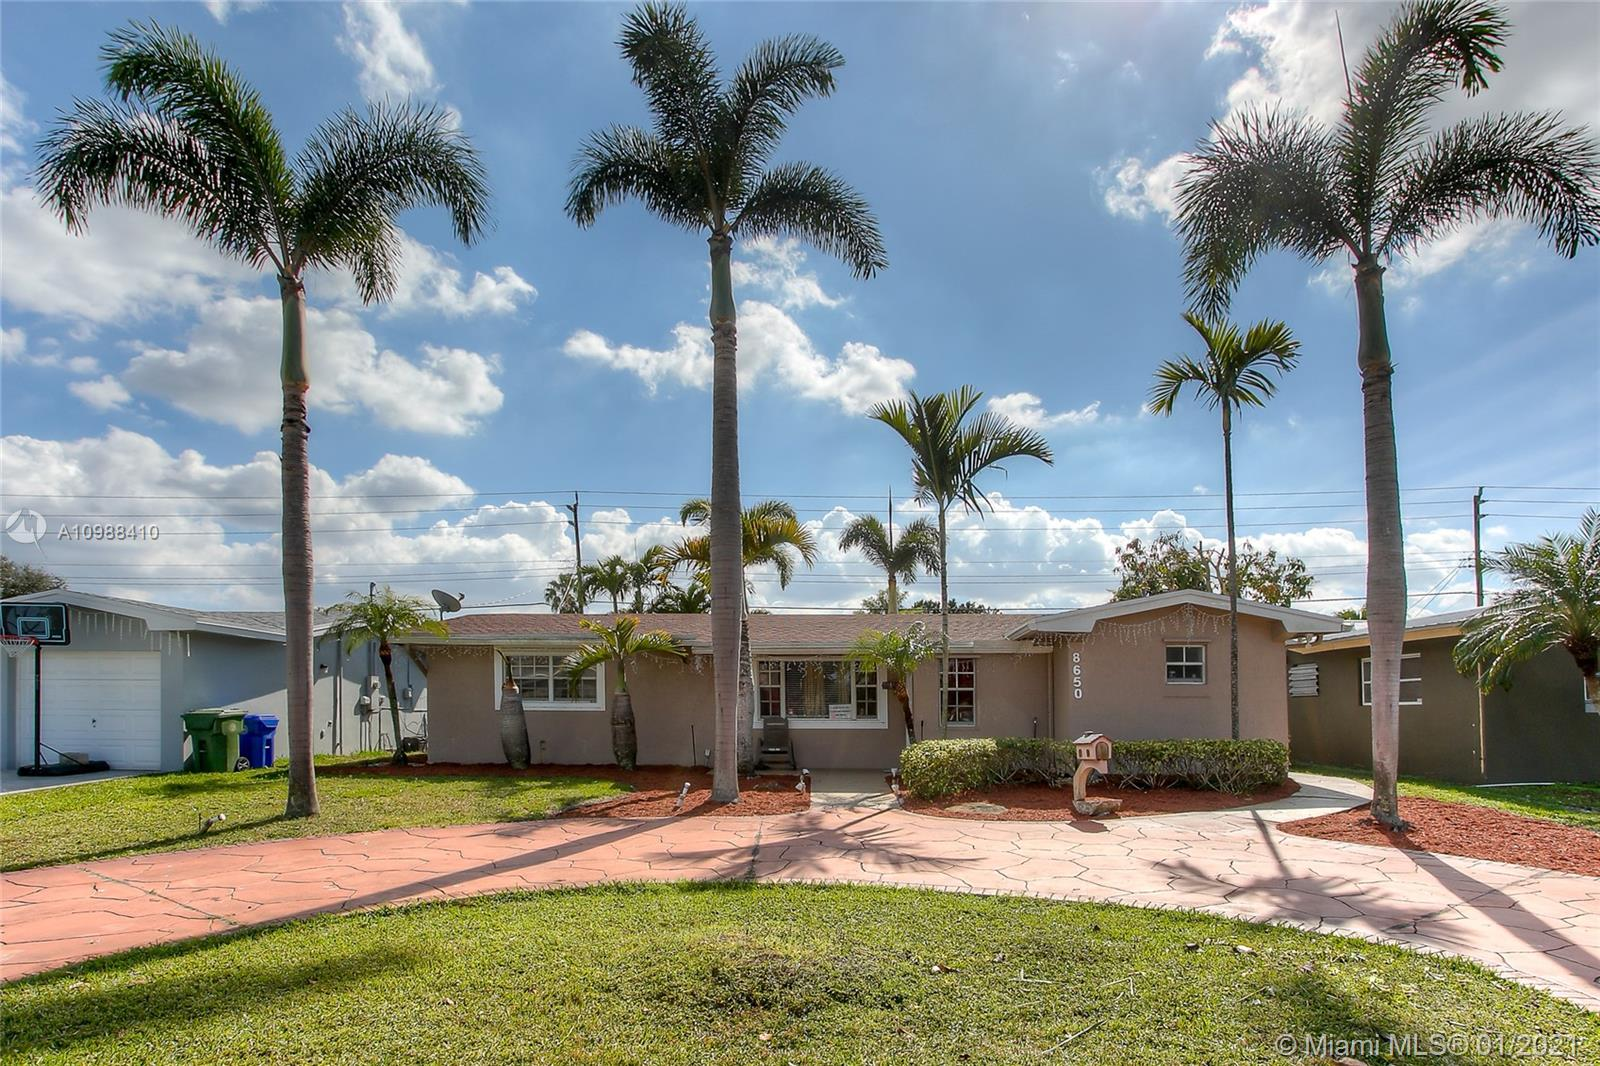 Boulevard Heights - 8650 NW 11th St, Pembroke Pines, FL 33024